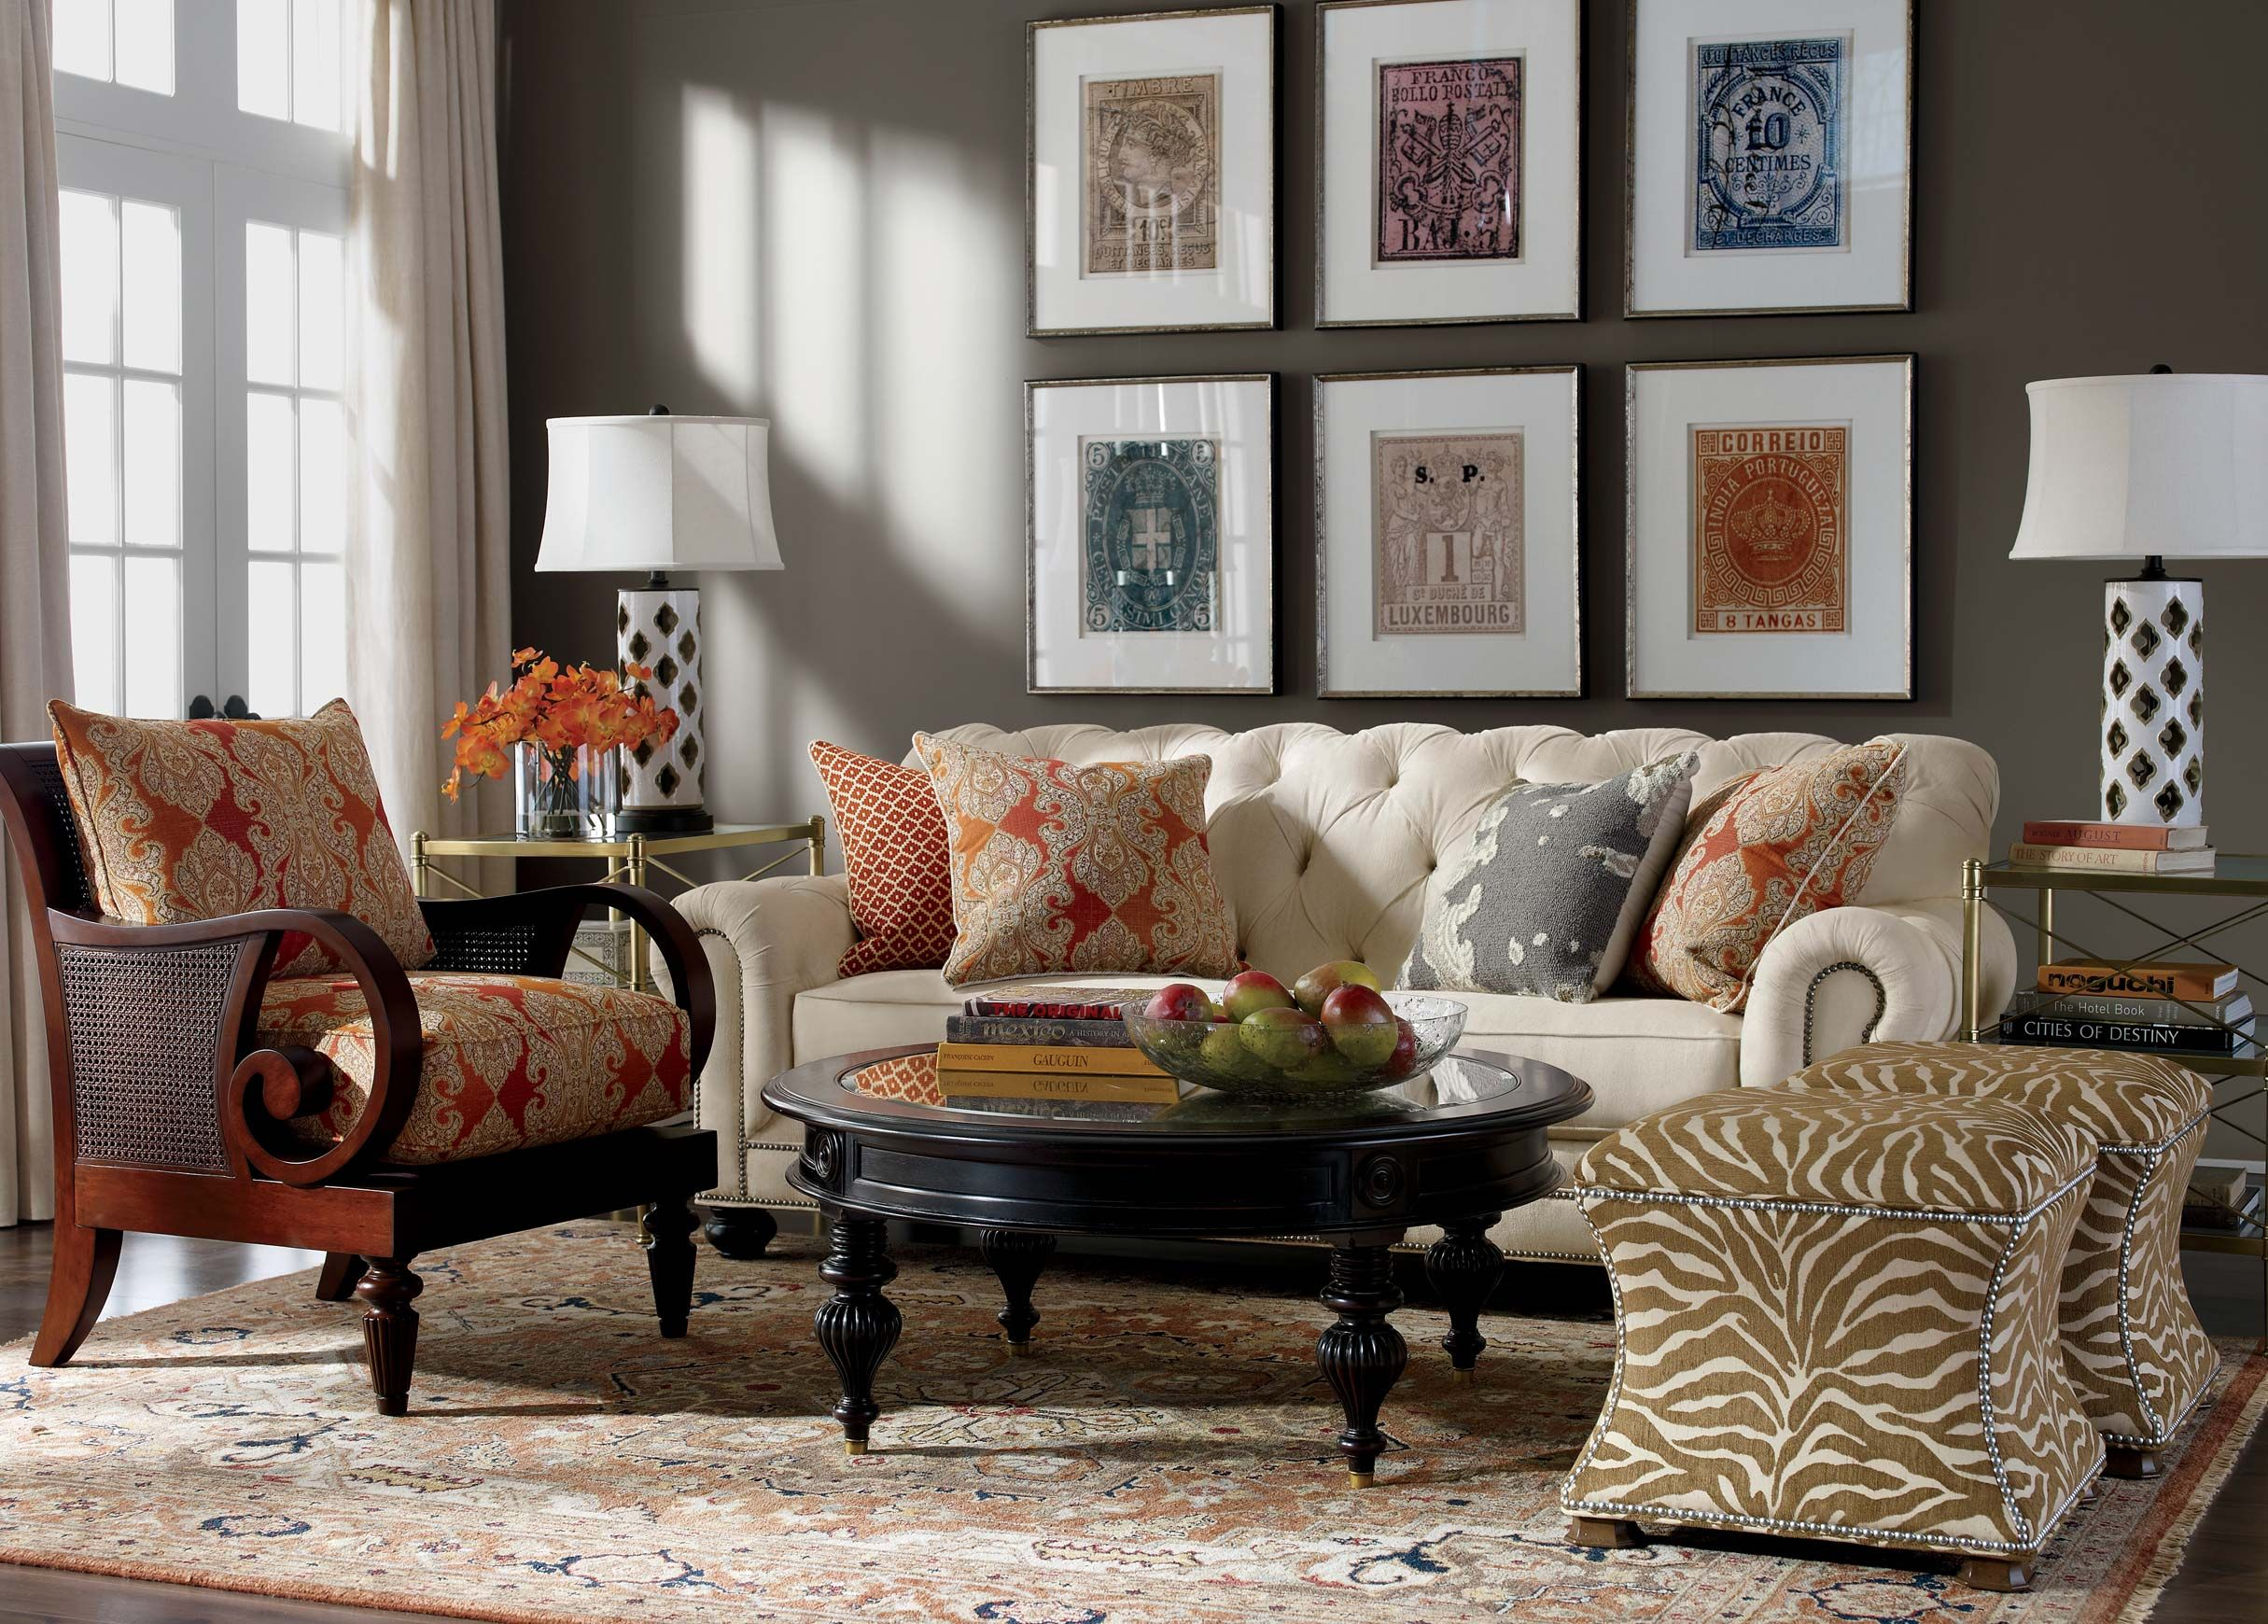 Global Mix Living Room | Ethan Allen | Interior Design | Animal Print  Ottoman | Collecter | Red And Gold | Rust | Accent Wall | Gallery Wall